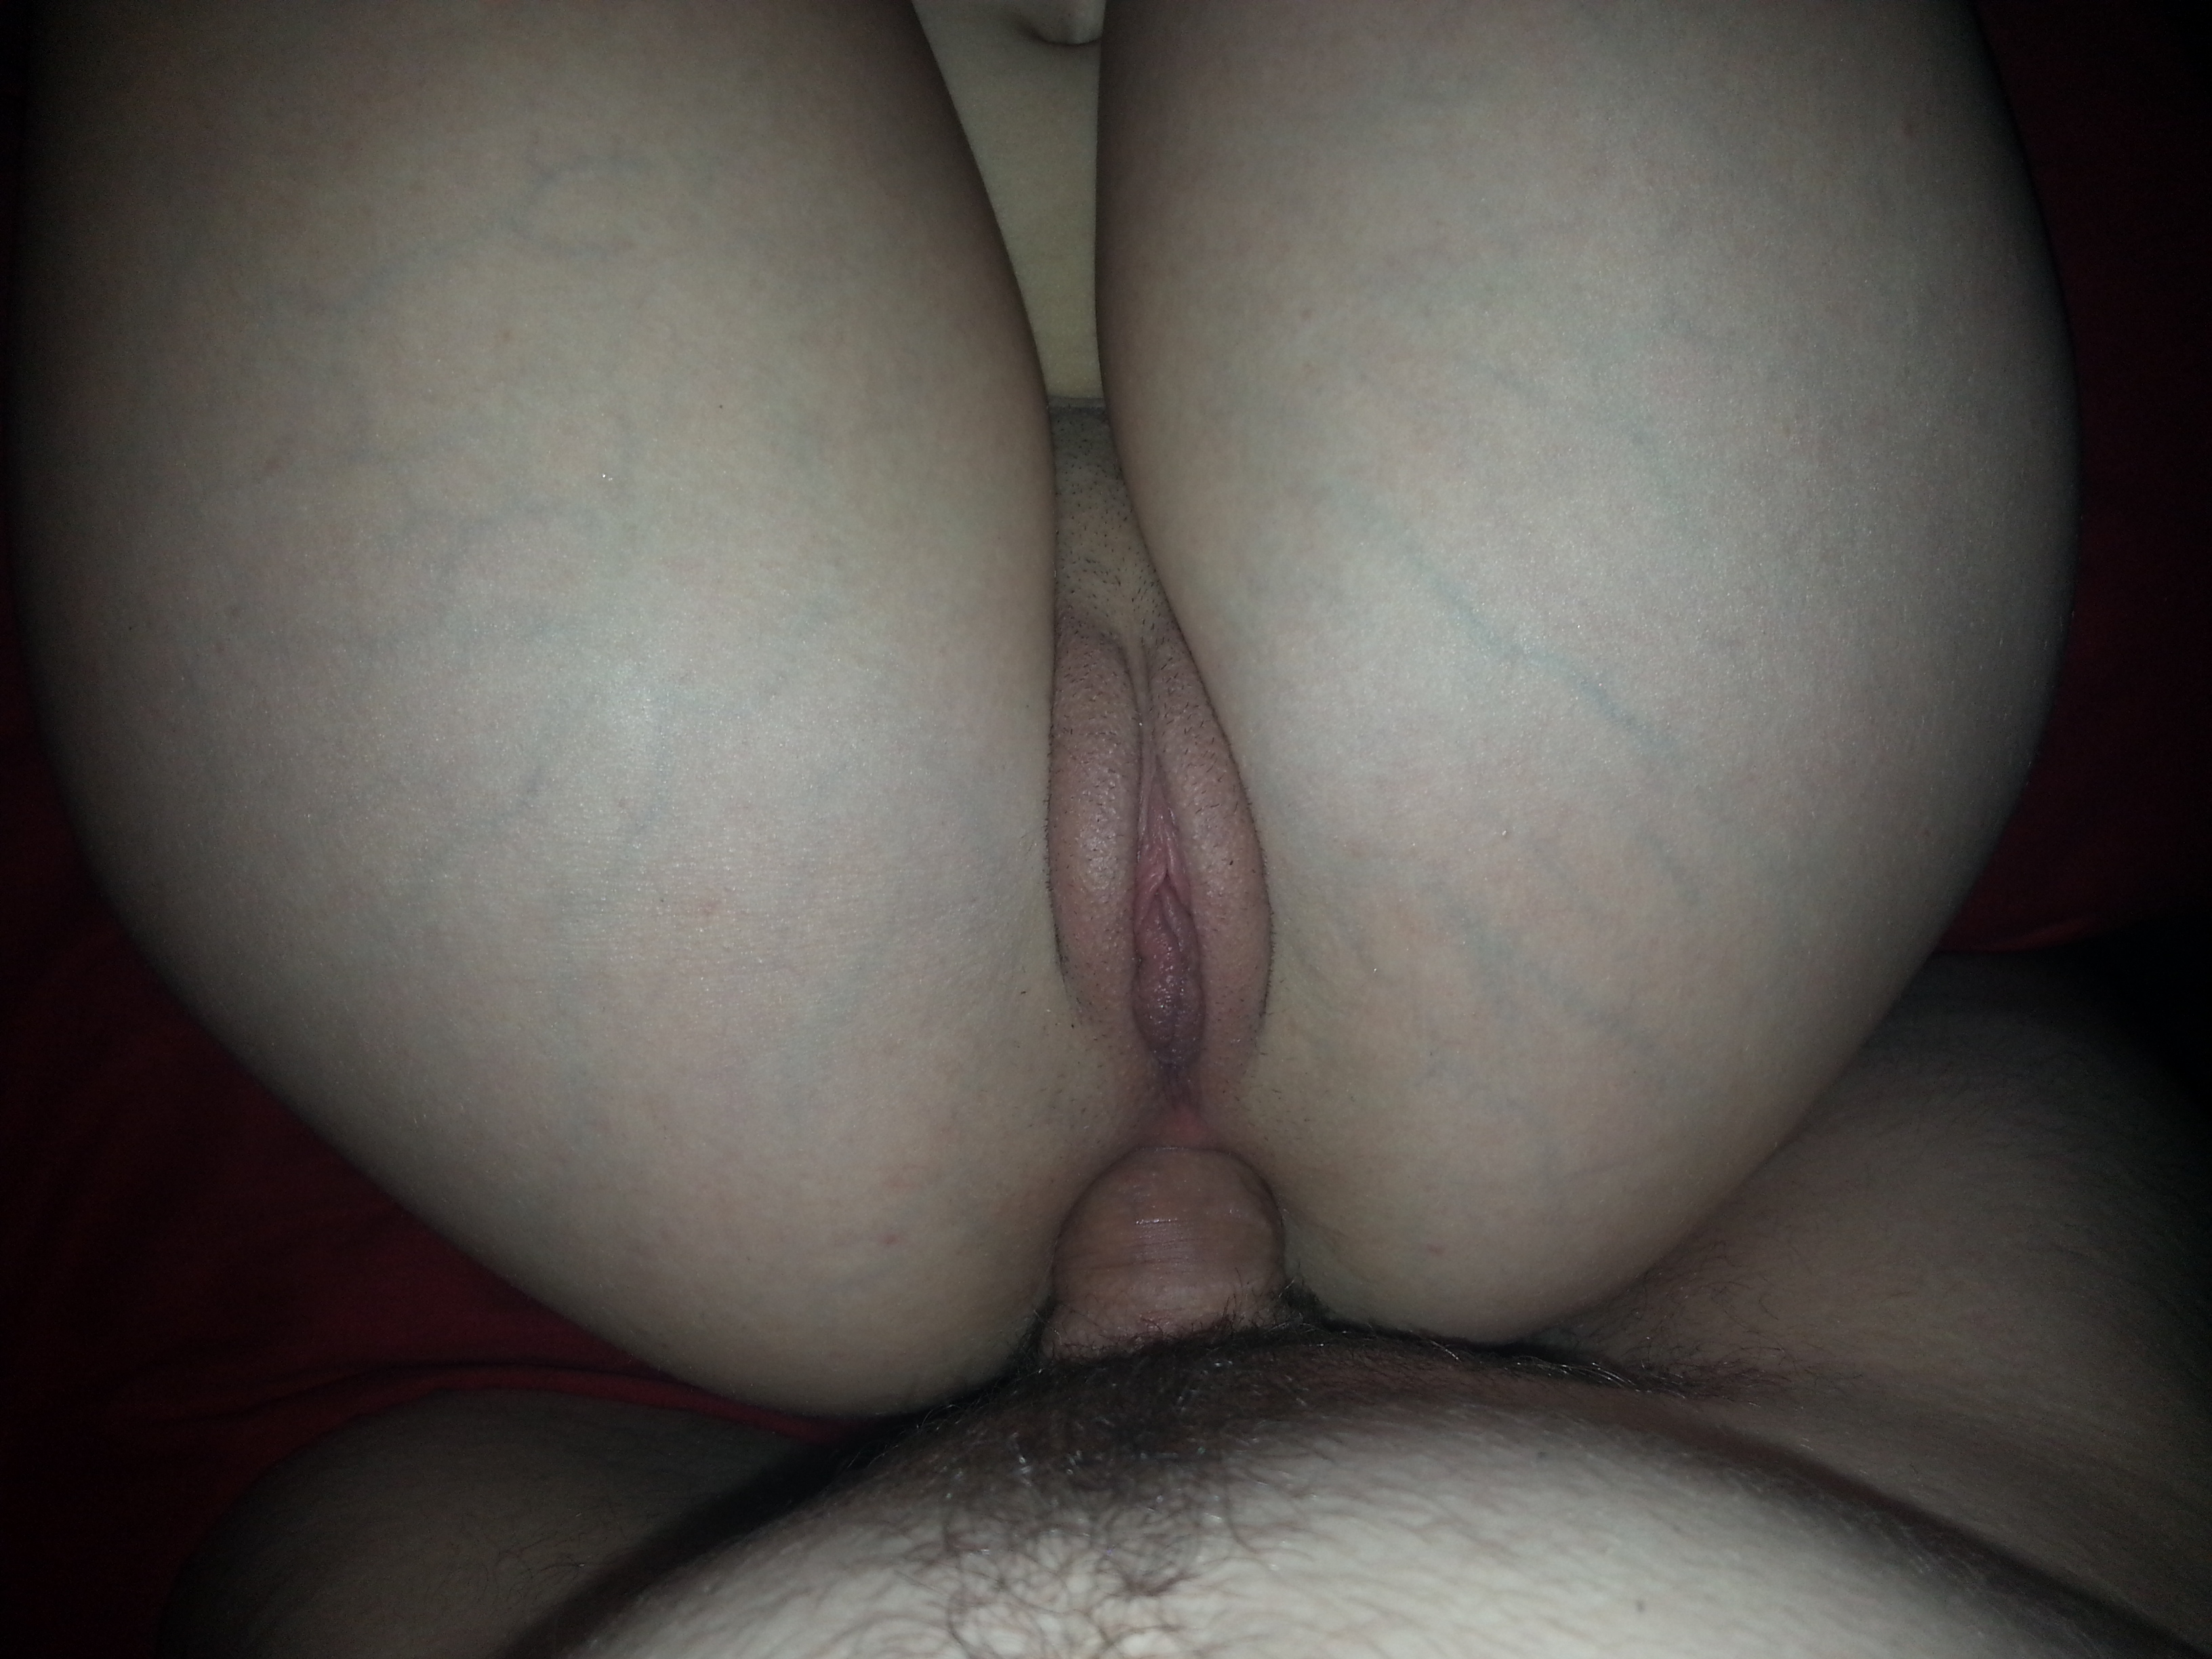 My wife hates eing ass fucked